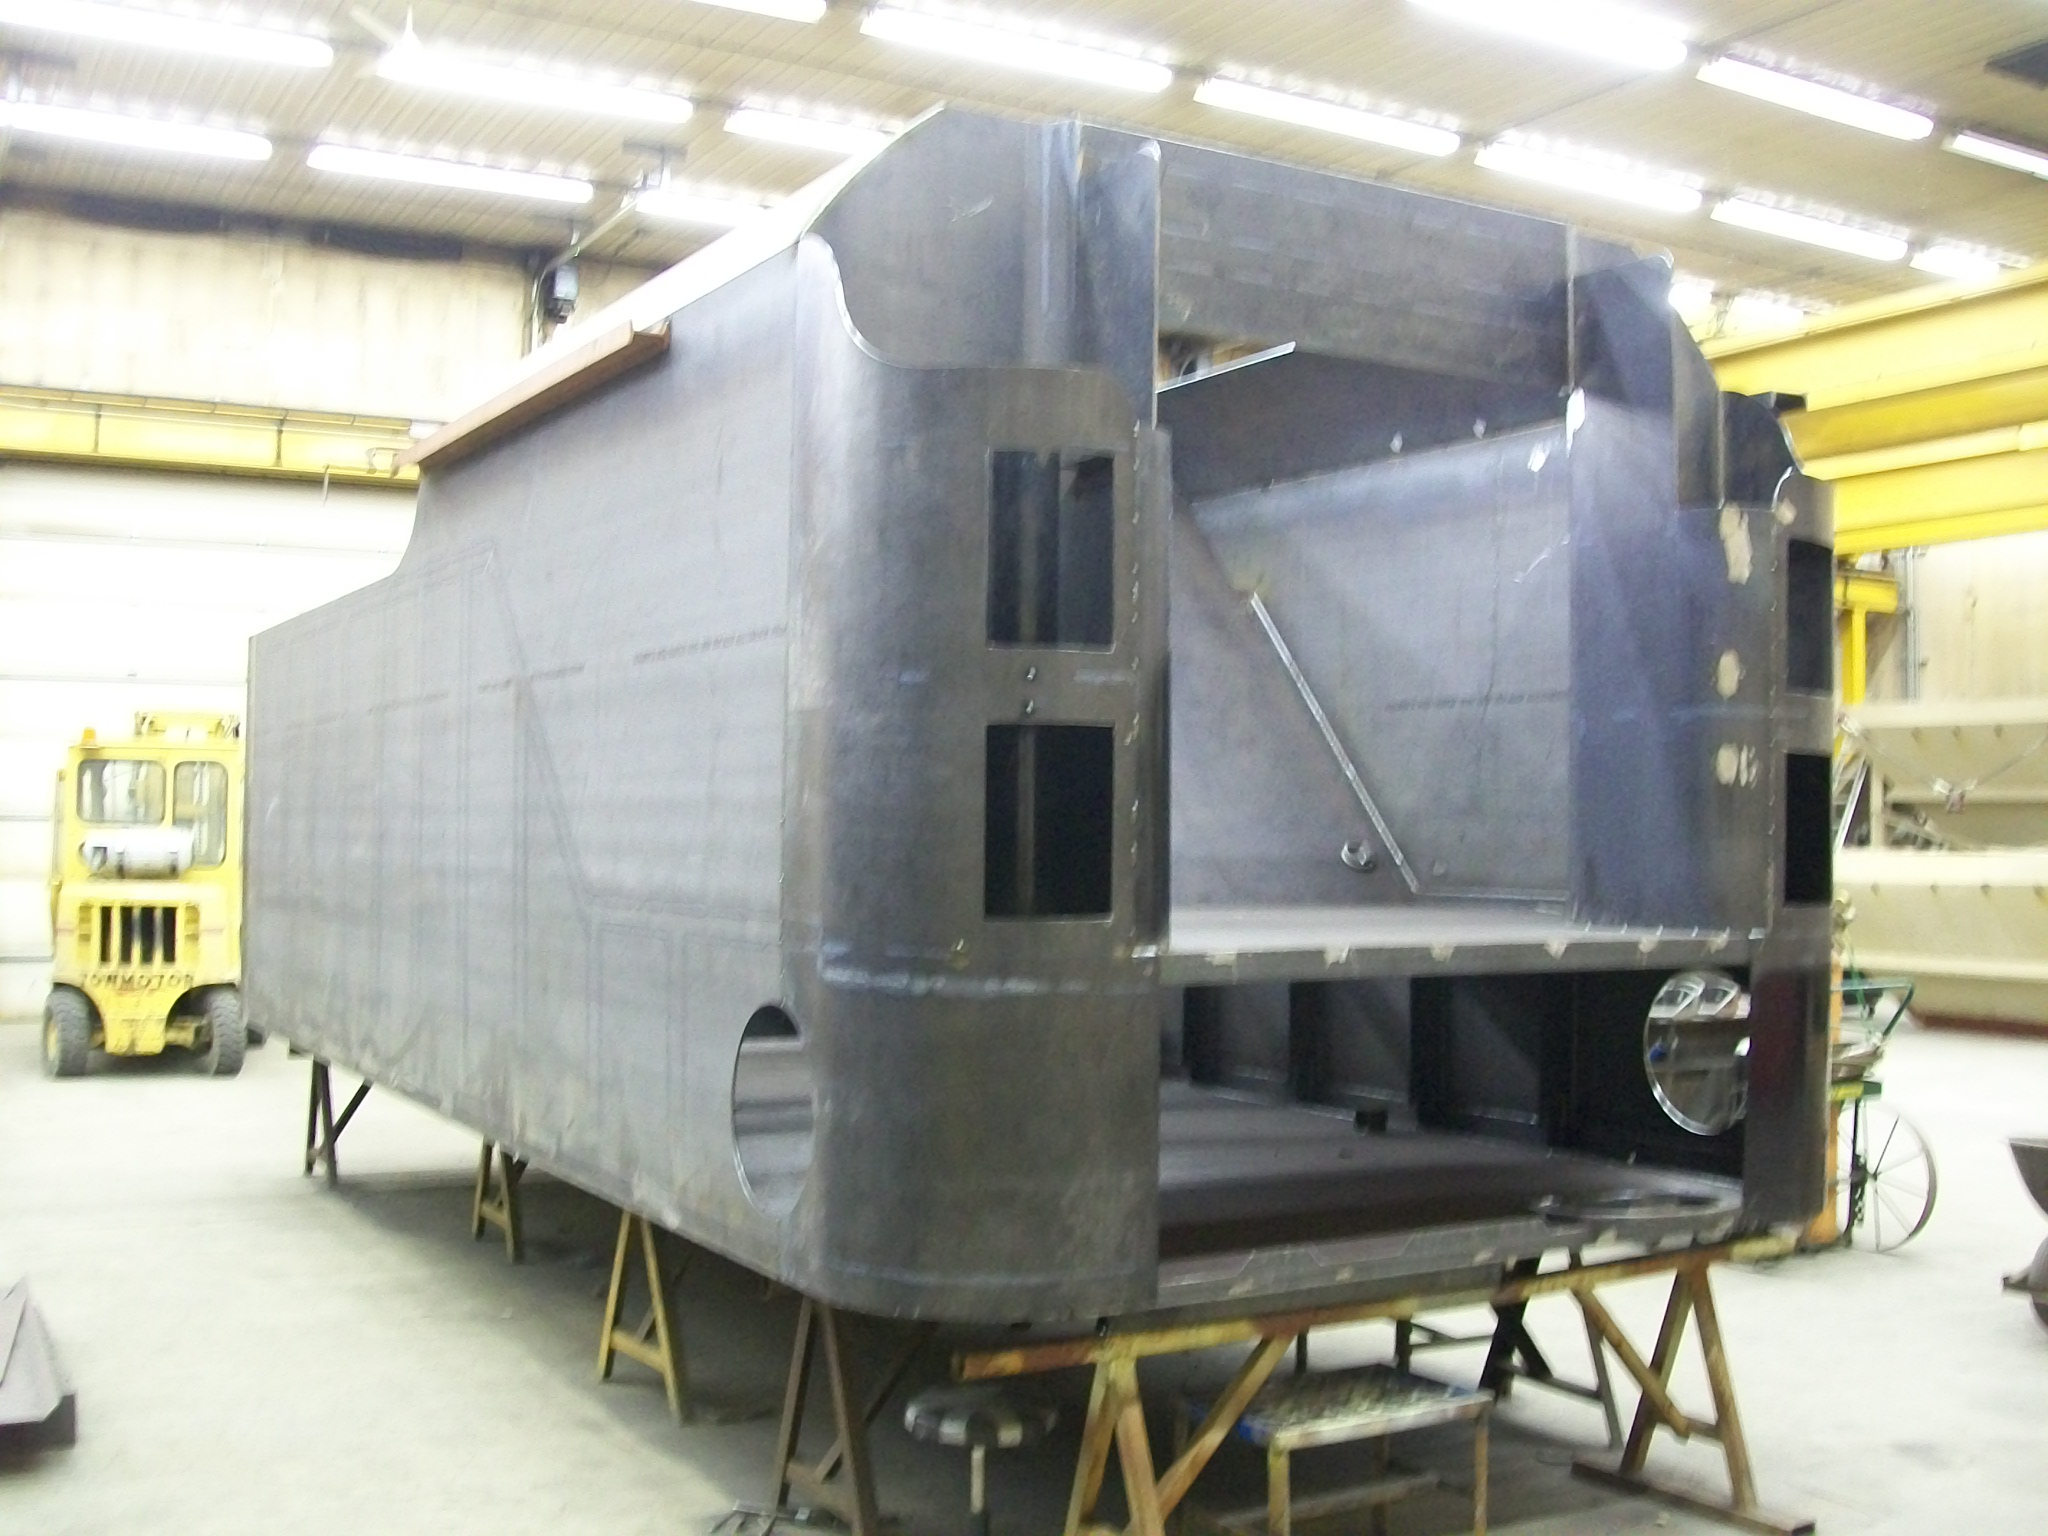 New C&NW 1385 tender tank under construction at DRM Industries. March 5, 2012. Photo by DRM Industries